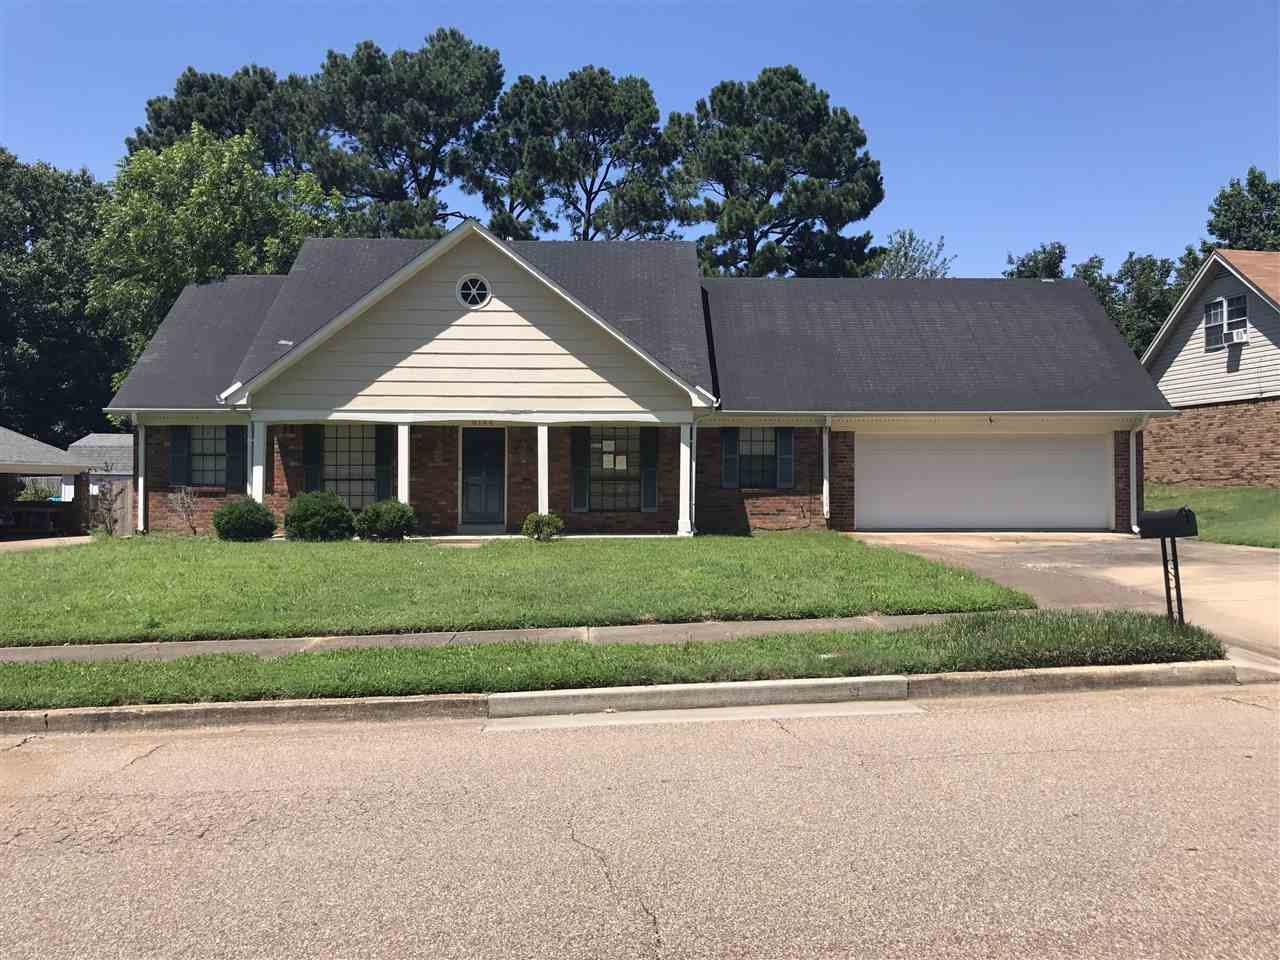 6144 Shade Tree Bartlett, TN 38134 - MLS #: 10004884